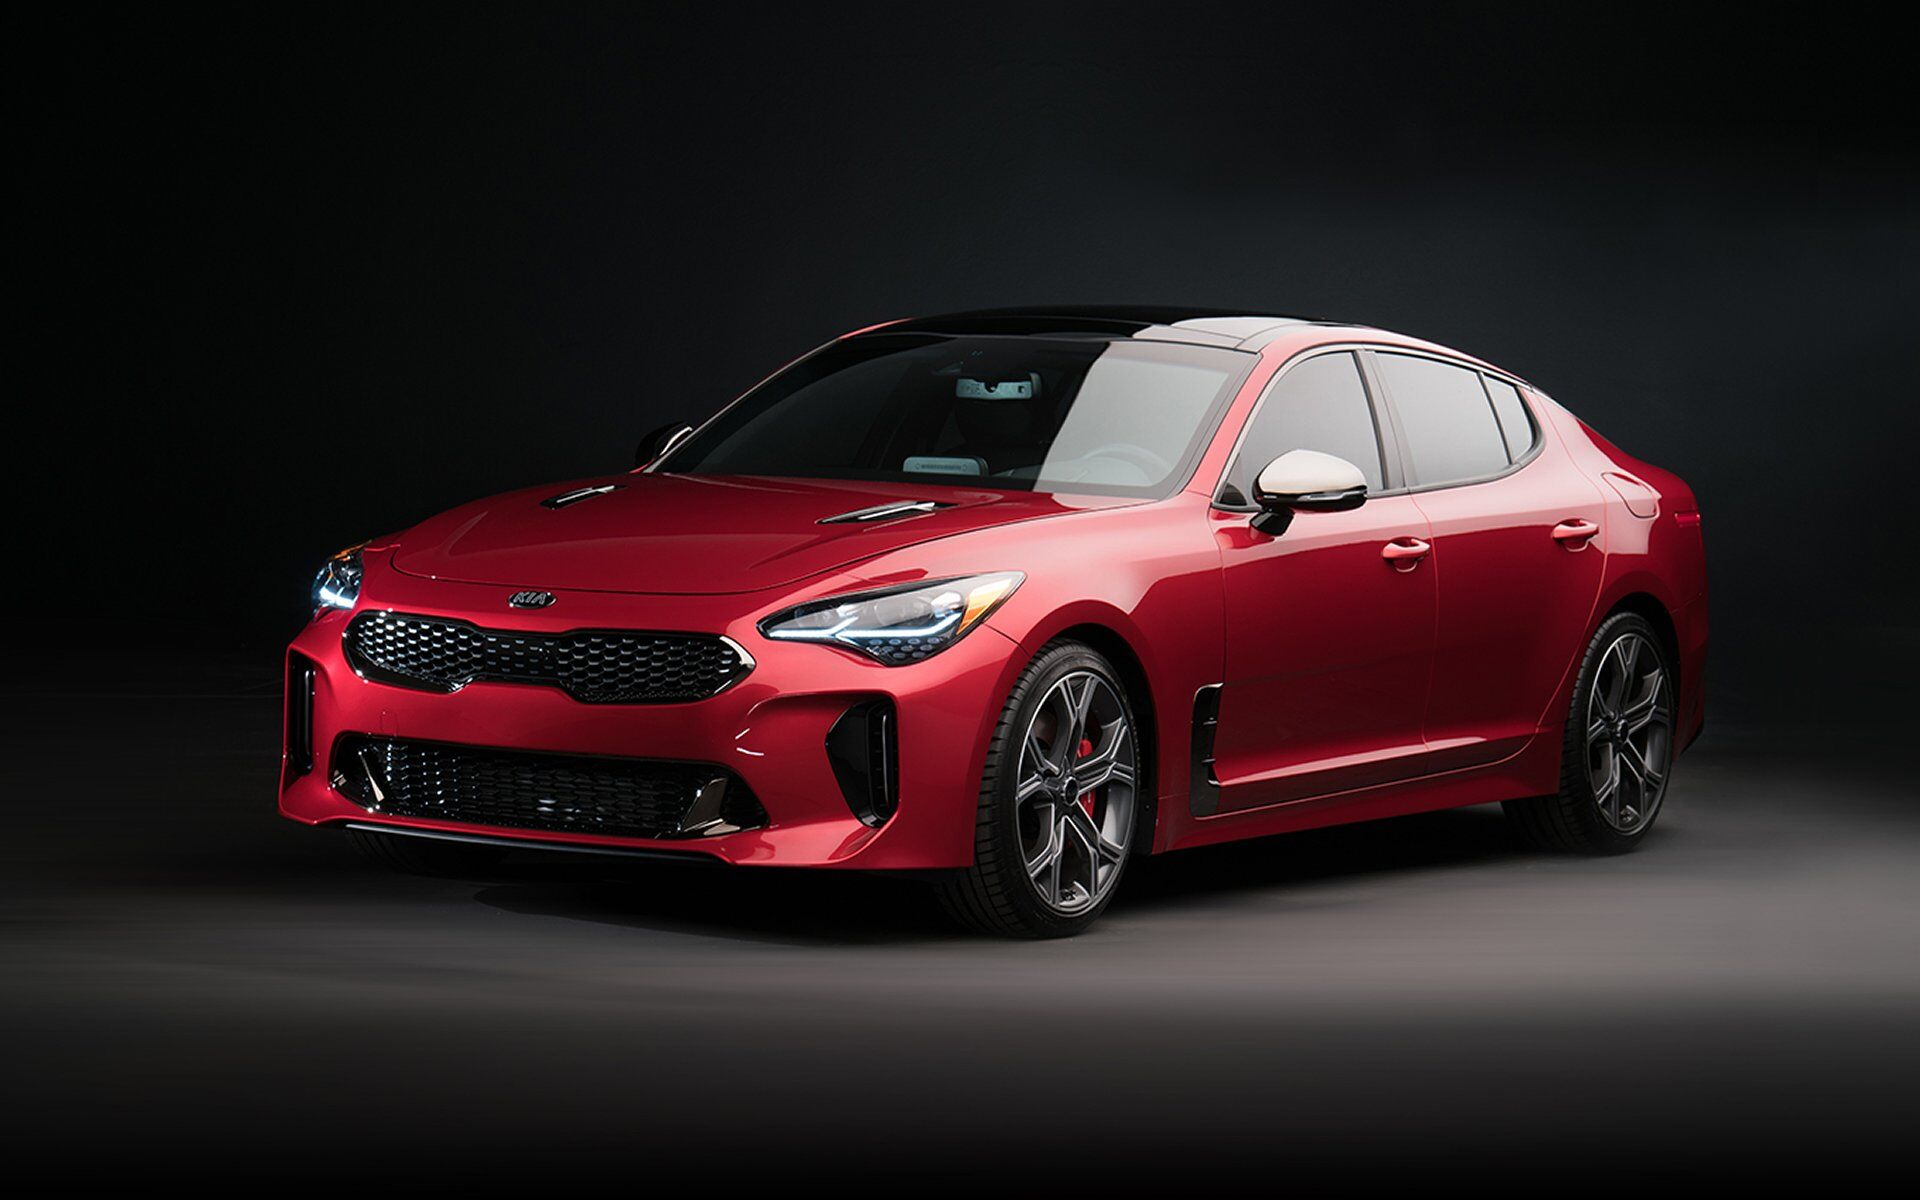 2018 Kia Stinger Test Drive in Prescott Valley